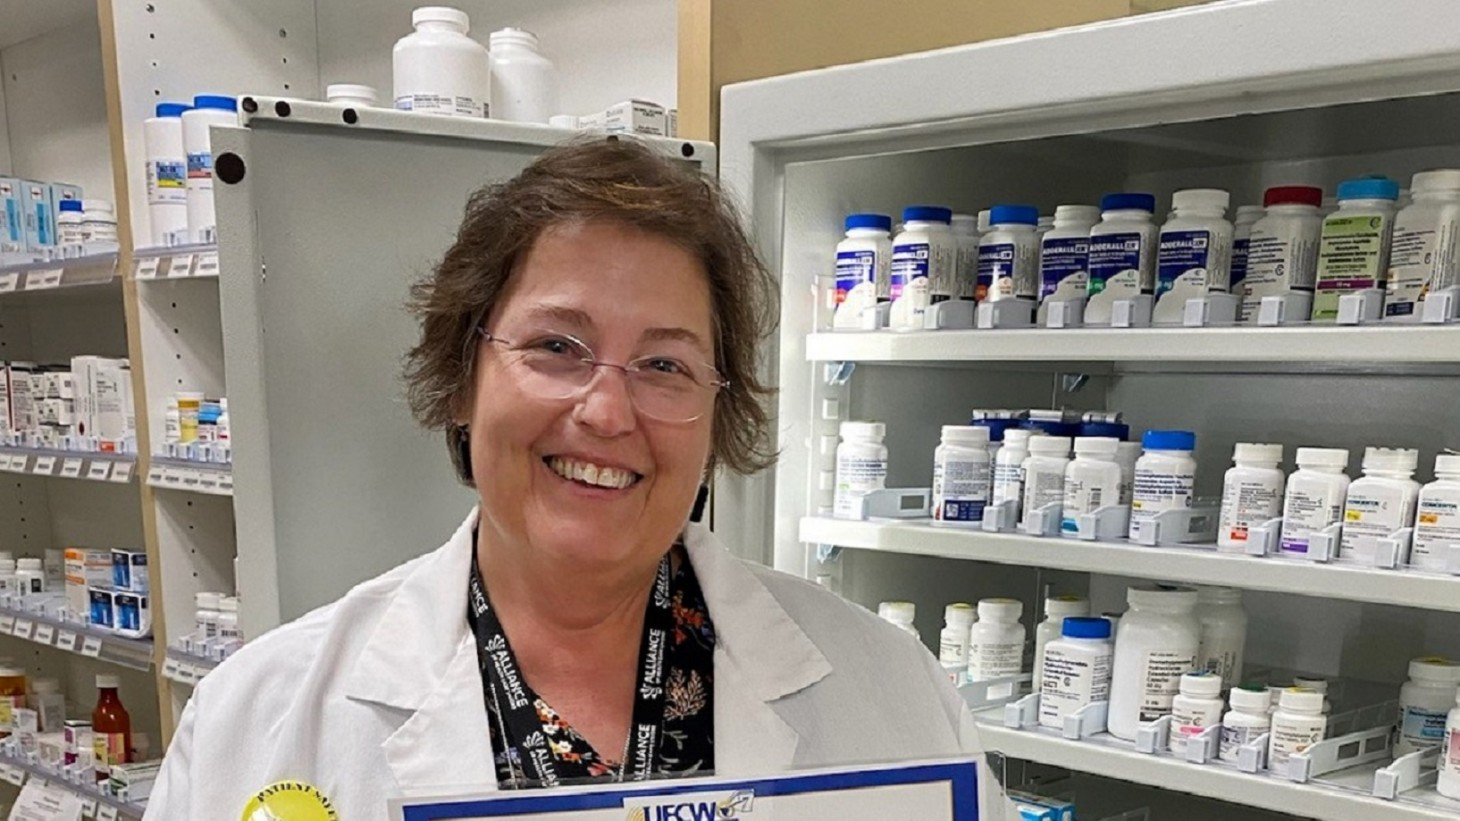 woman in lab coat posing in front of shelves of pill bottles